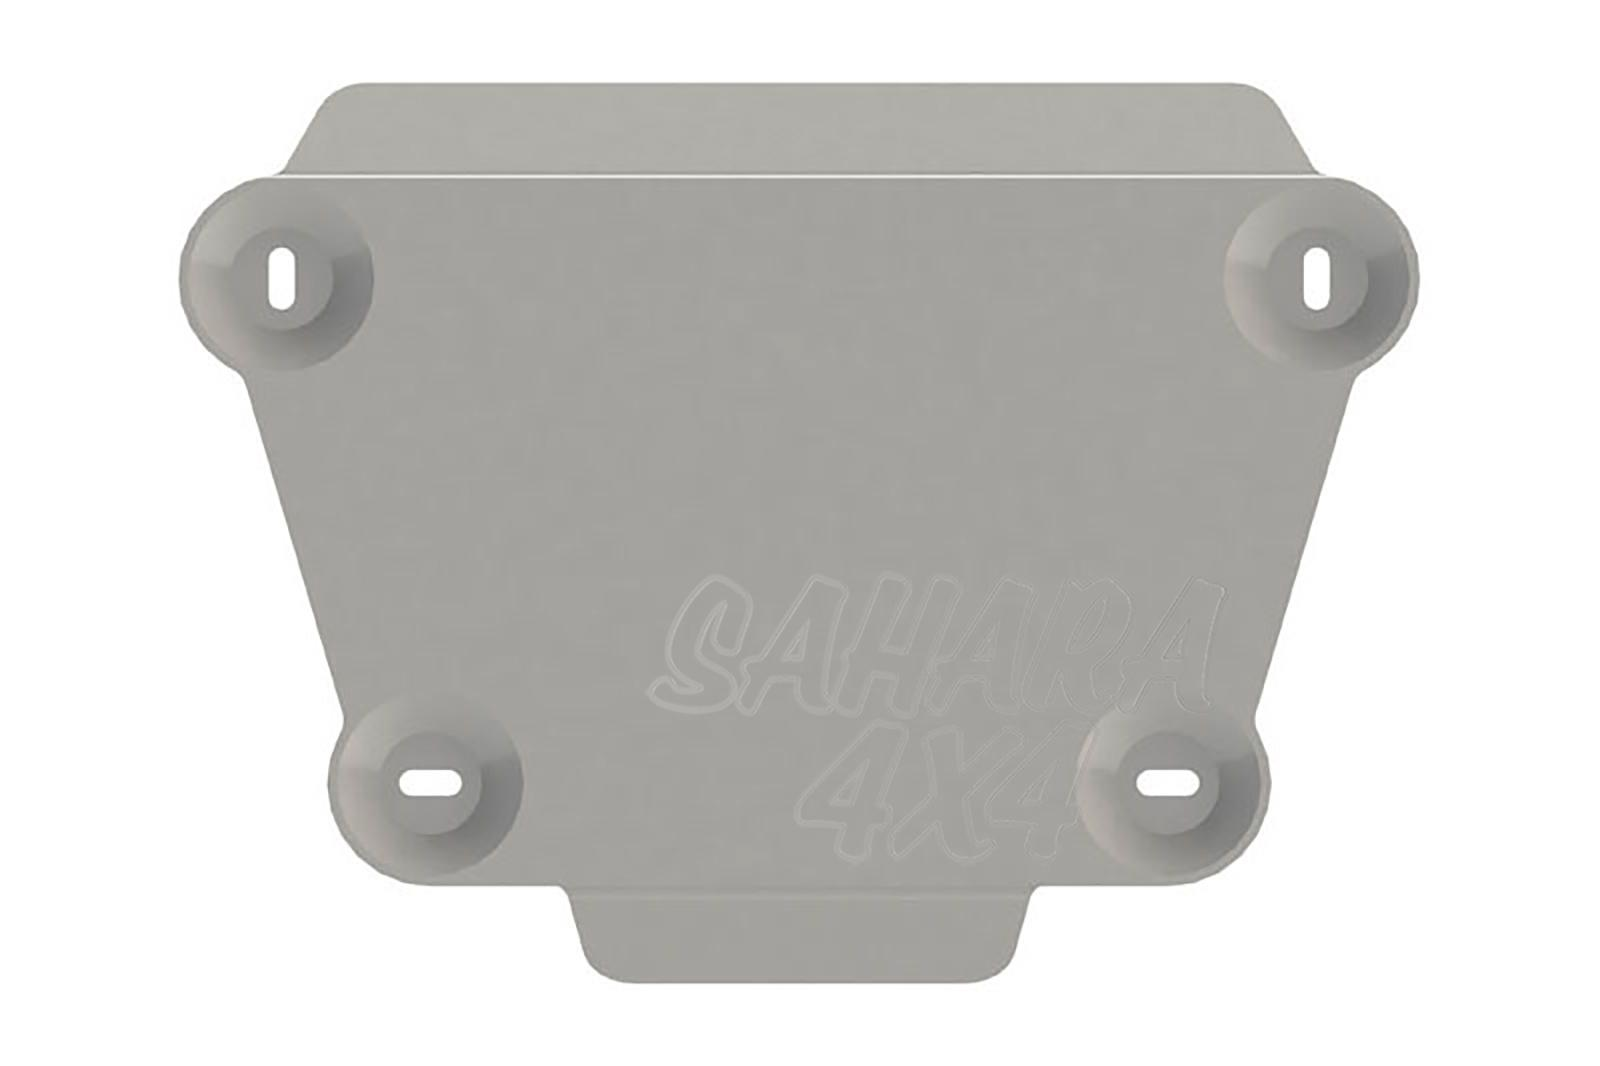 Skid Plate Sheriff For Ford Kuga Fuse Box Share To